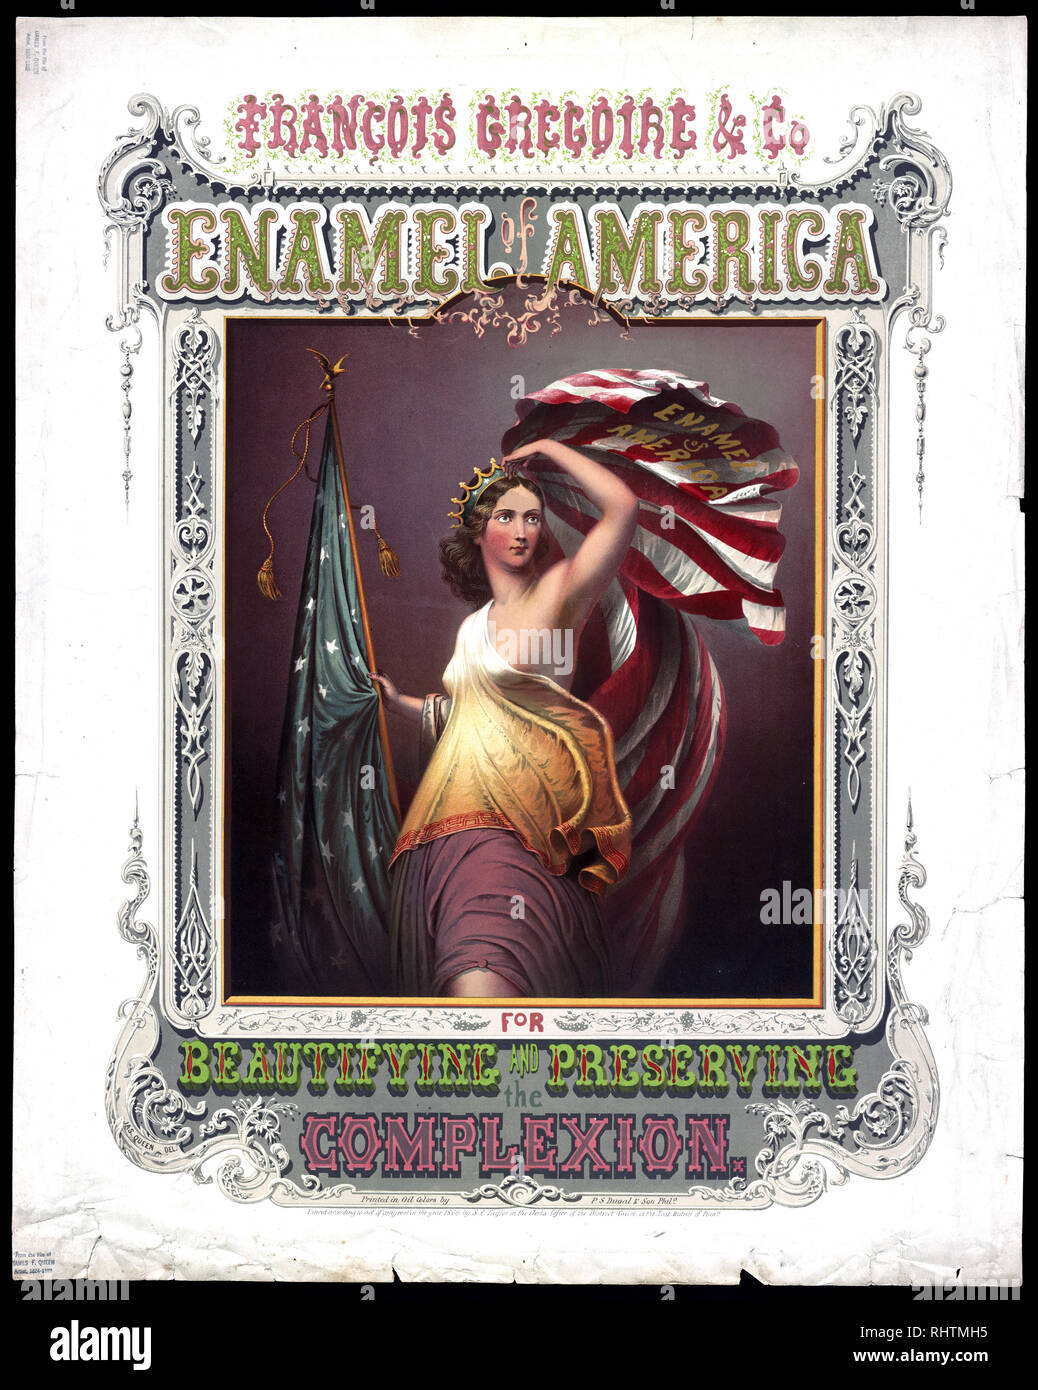 Print shows an advertising broadsheet for 'François Gregoire & Co.', with a female figure as Columbia holding an American Flag that is labeled 'Enamel of America'. - Stock Image